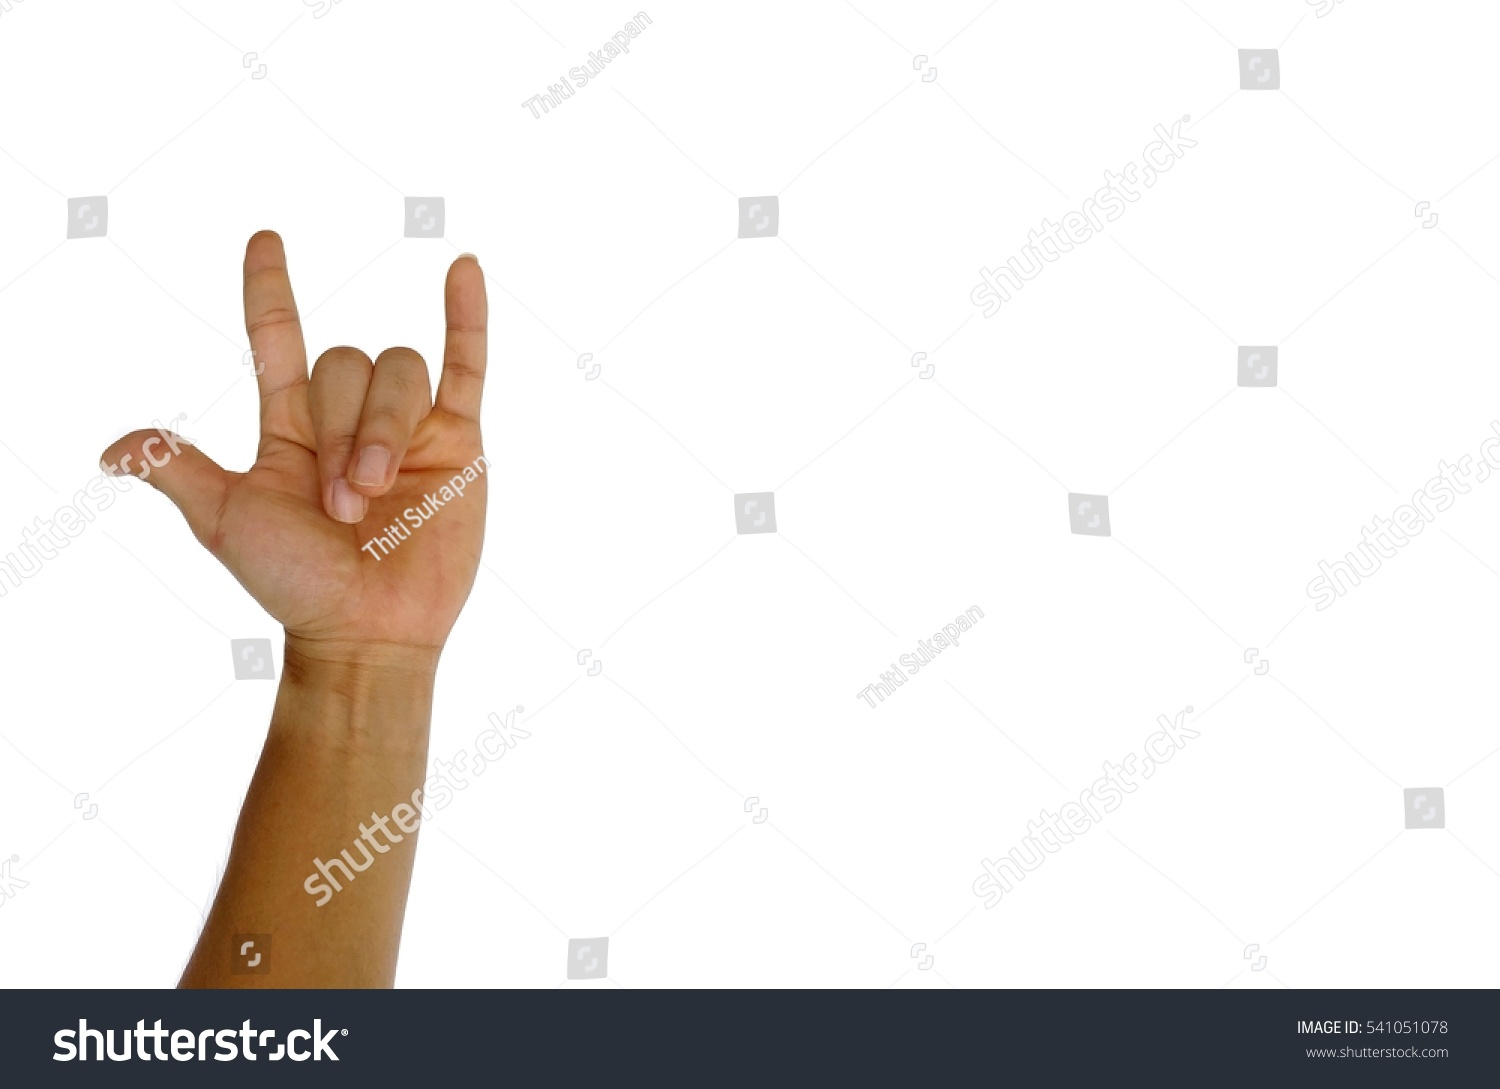 Admire Hand Symbol Stock Photo 541051078 : Shutterstock